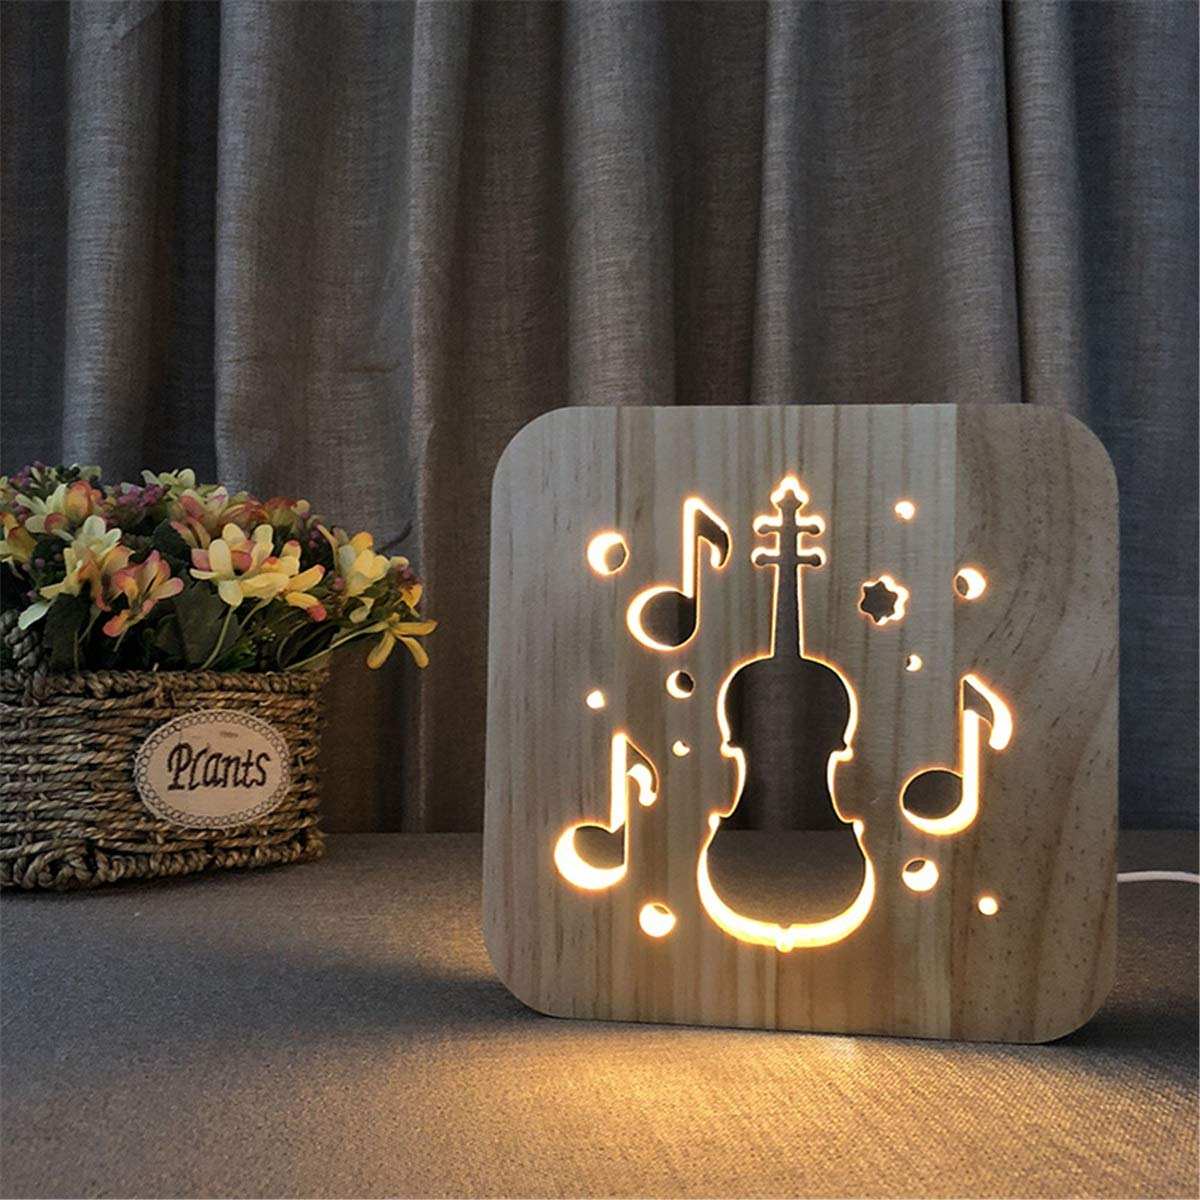 Lovely Nursery USB Powered Violin Wooden 3D Night Light Carving Pattern Table Desk LED Lamp Beside Nightlight Home Decoration Art Sculpture Lights for Children